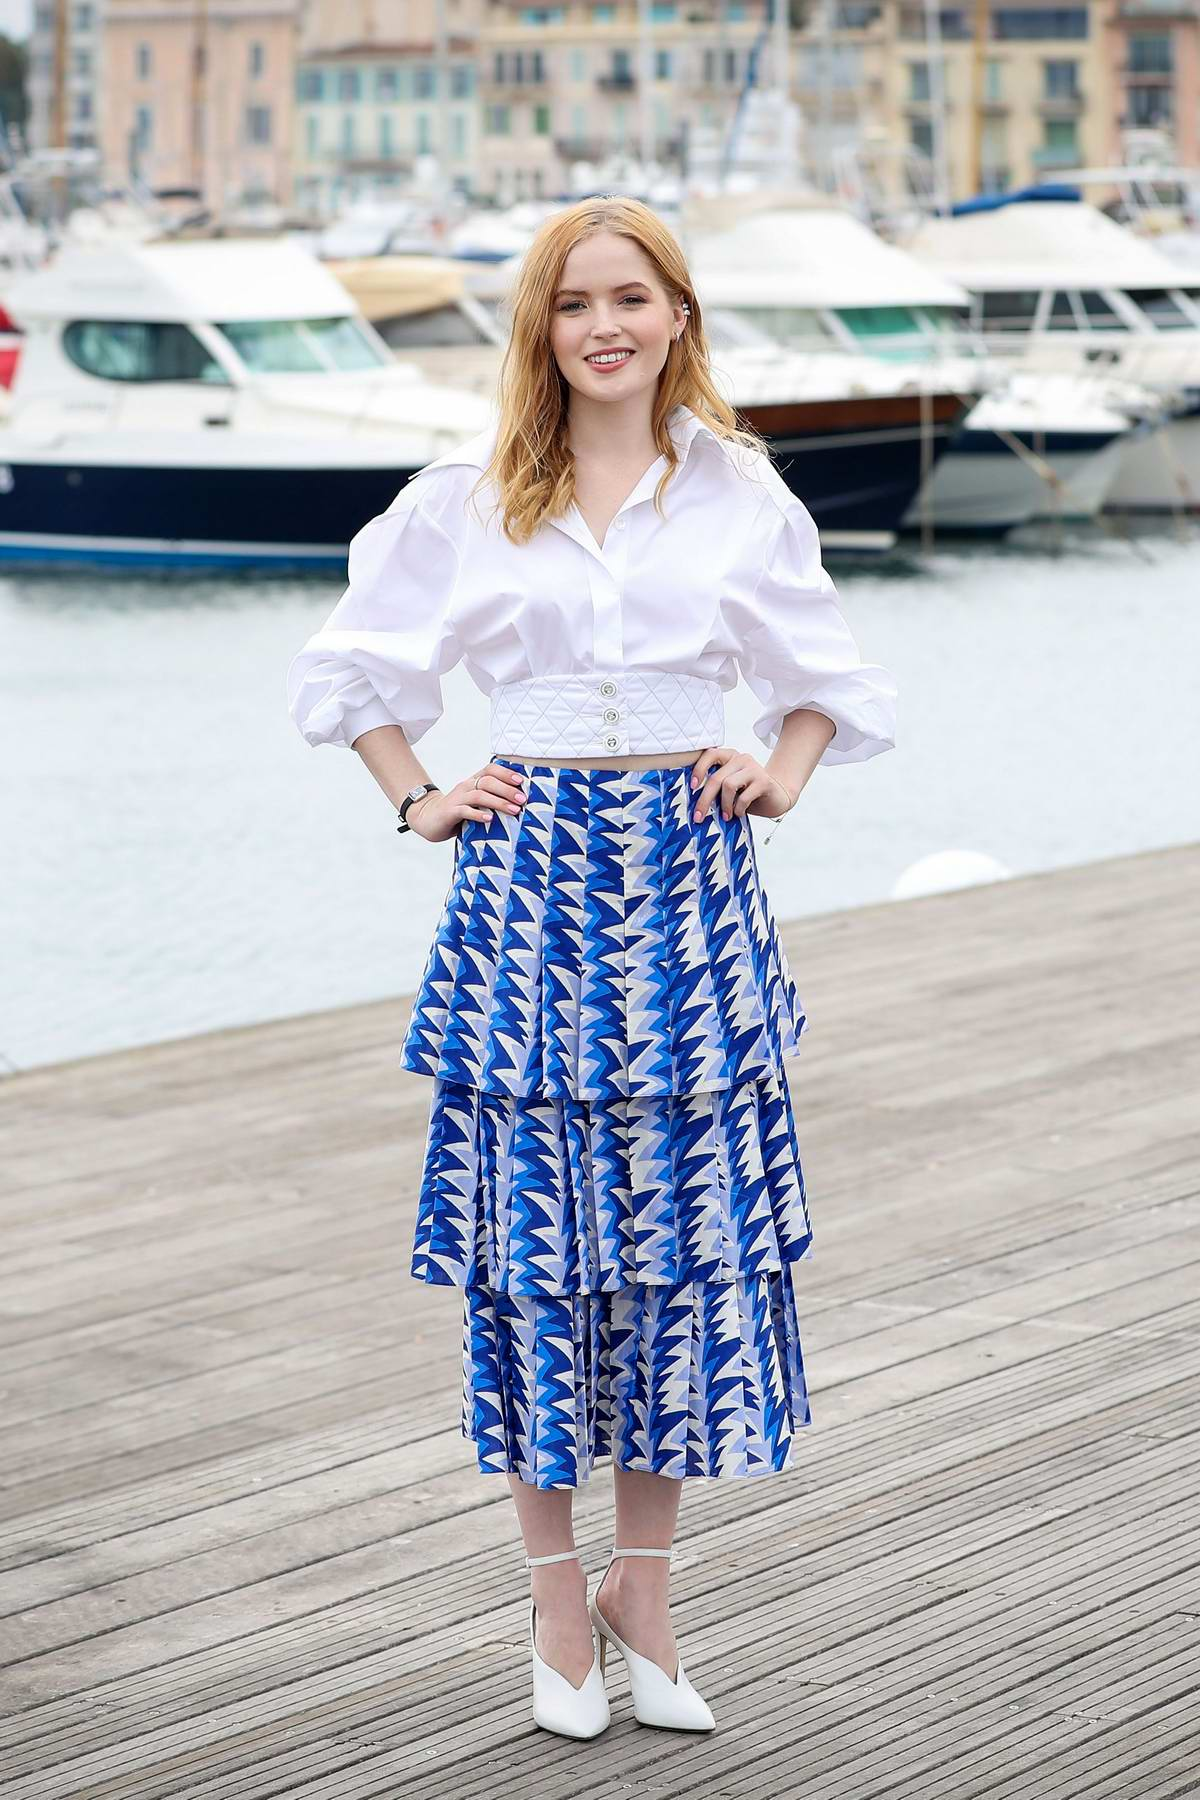 Ellie Bamber attends the photocall for 'Les Miserables' during MIPCOM 2018 in Cannes, France